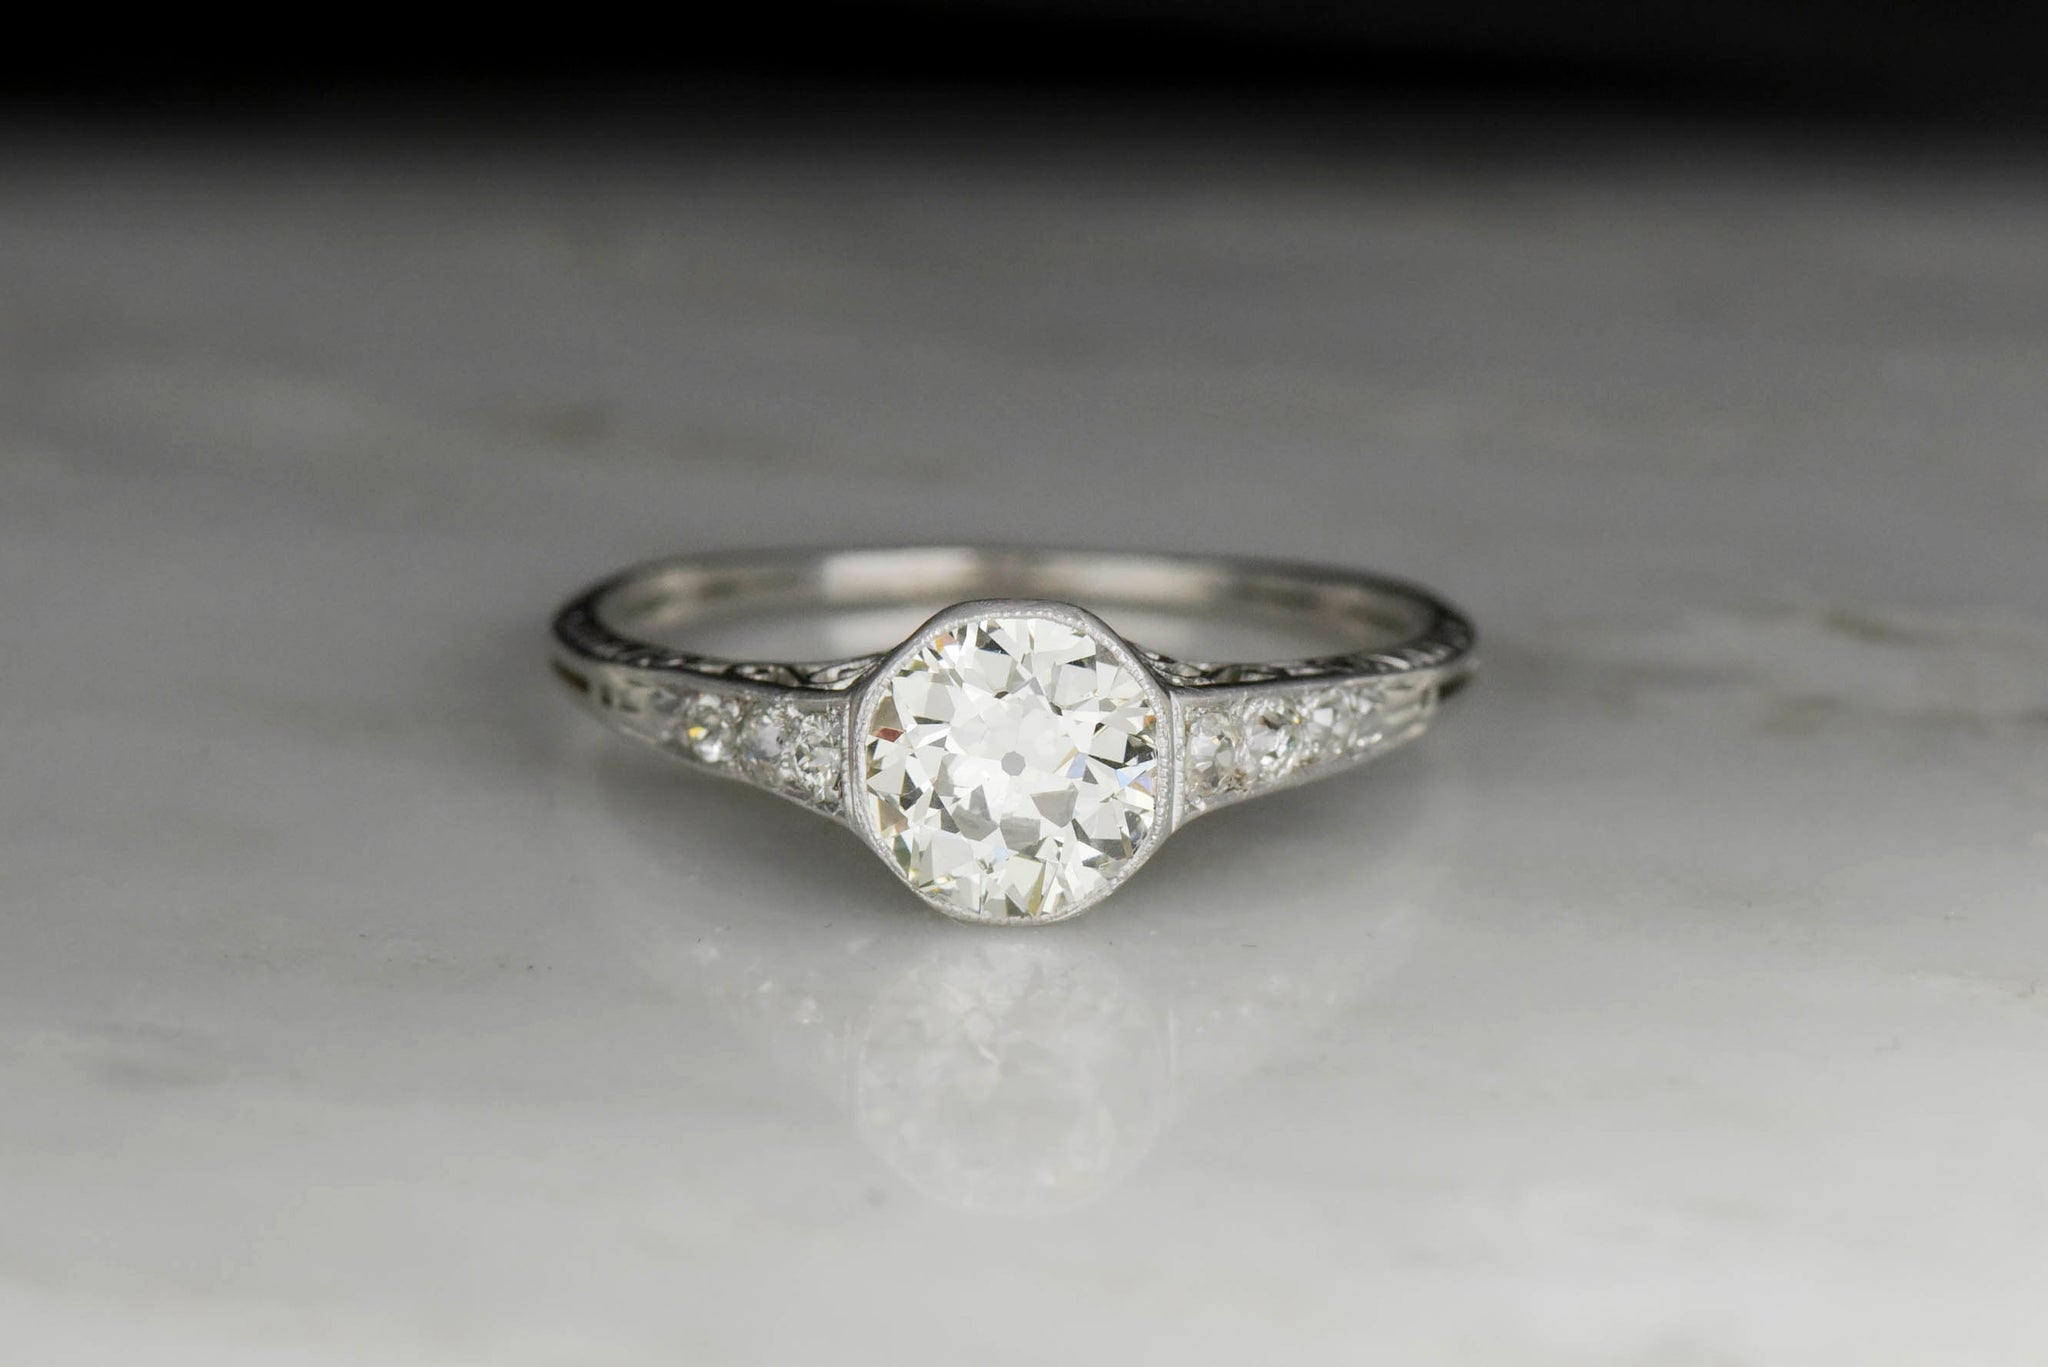 3f83f565a Late Edwardian GIA 1.11 Old European Cut Diamond Engagement Ring